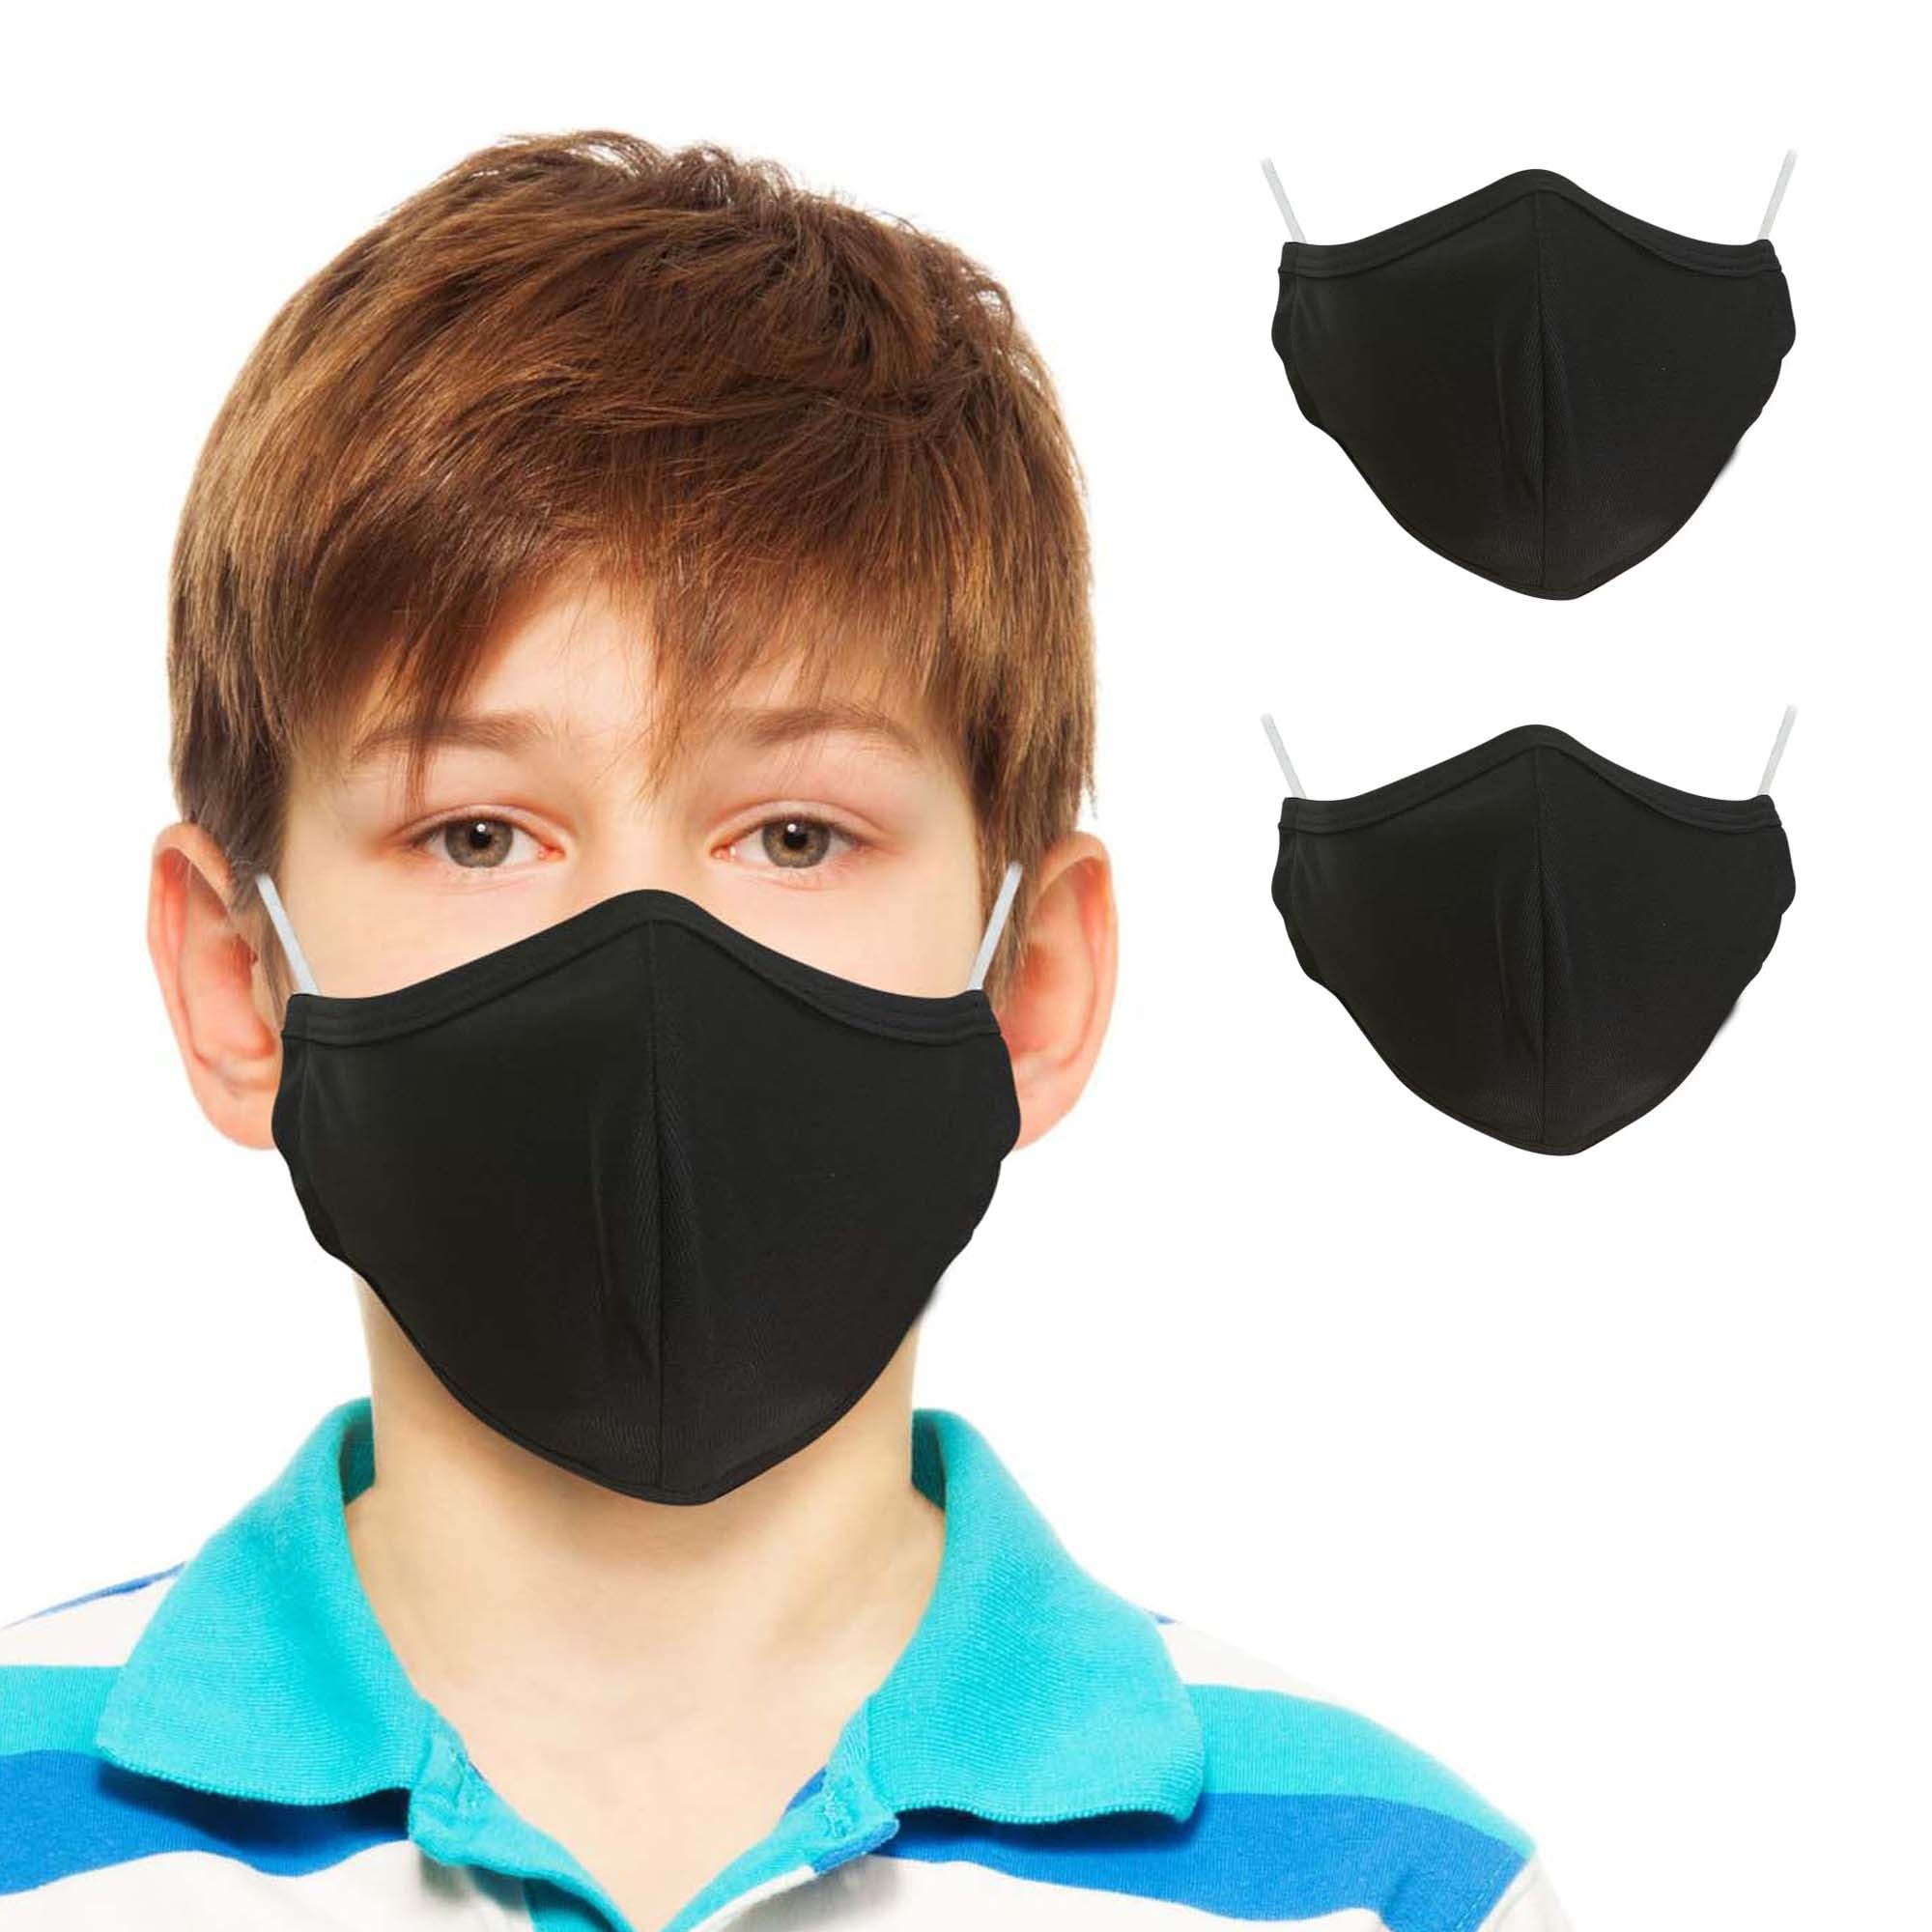 Fun & Cheery Plain Face Masks for Kids (2-pack) - Primeware Inc.